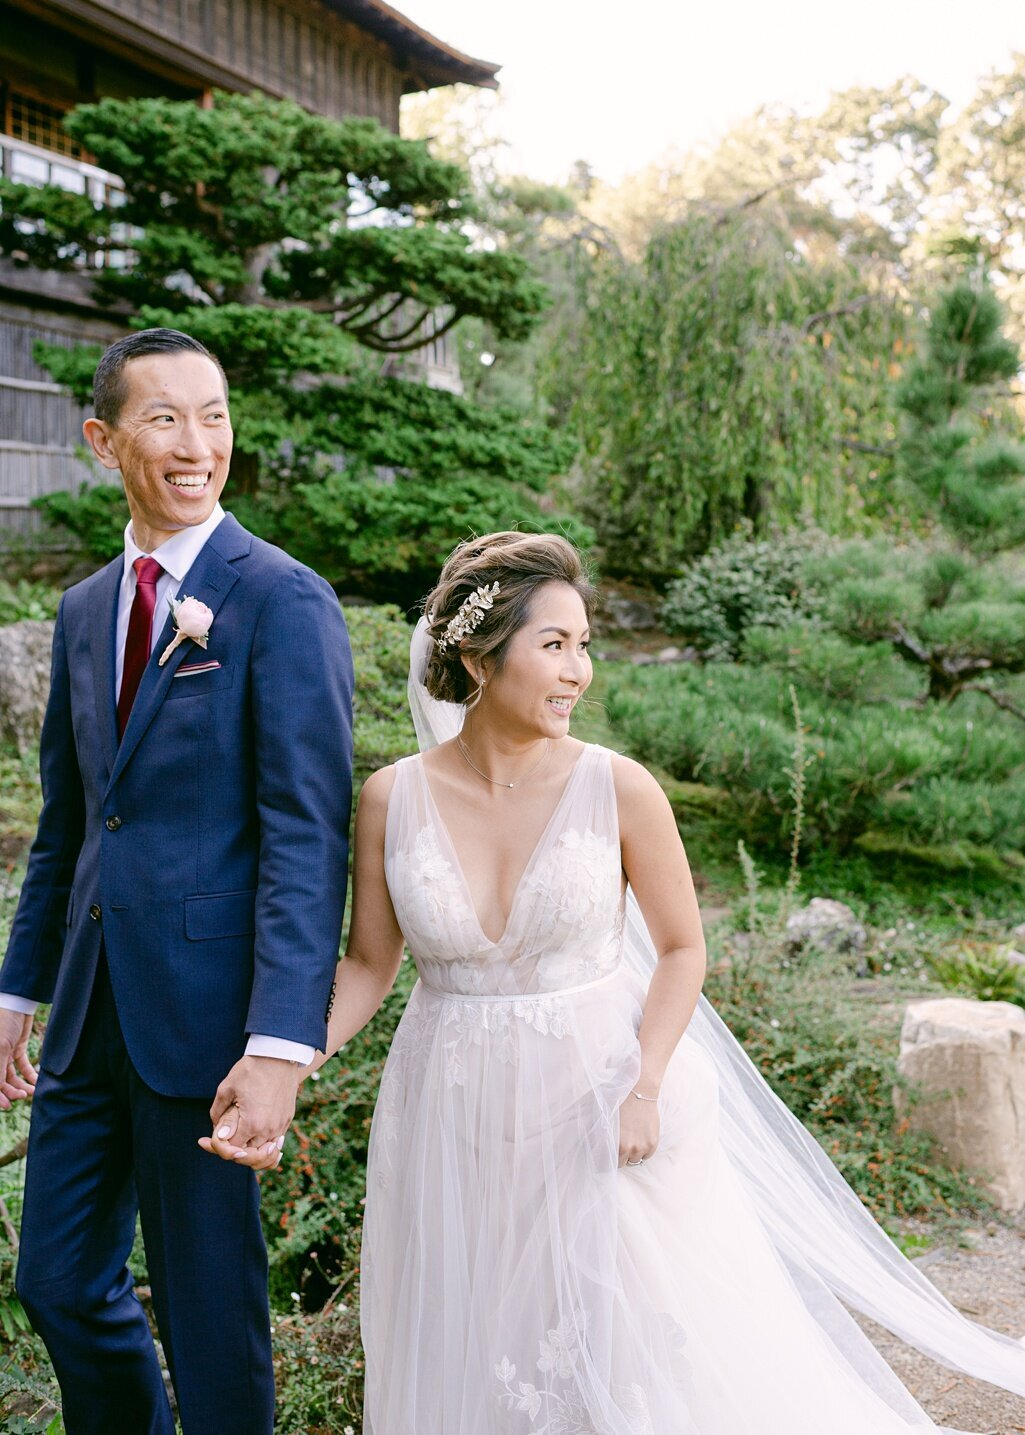 Jessie-Barksdale-Photography_Hakone-Gardens-Saratoga_San-Francisco-Bay-Area-Wedding-Photographer_0023